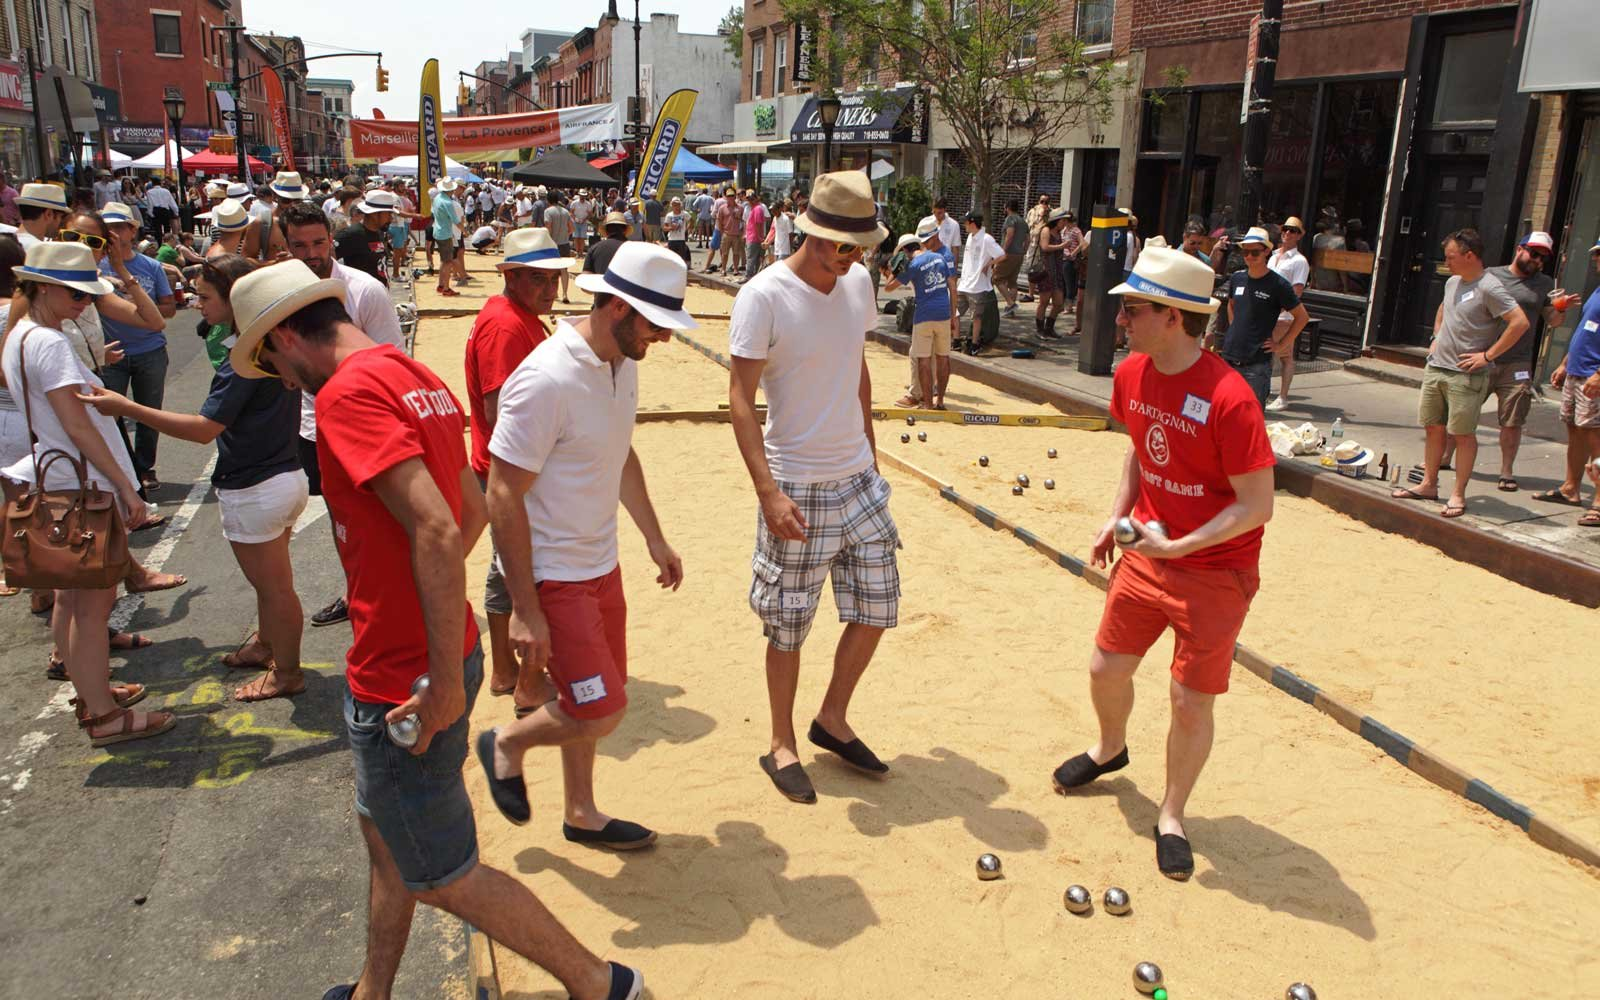 Petanque on Smith Street in Brooklyn during Bastille Day celebrations